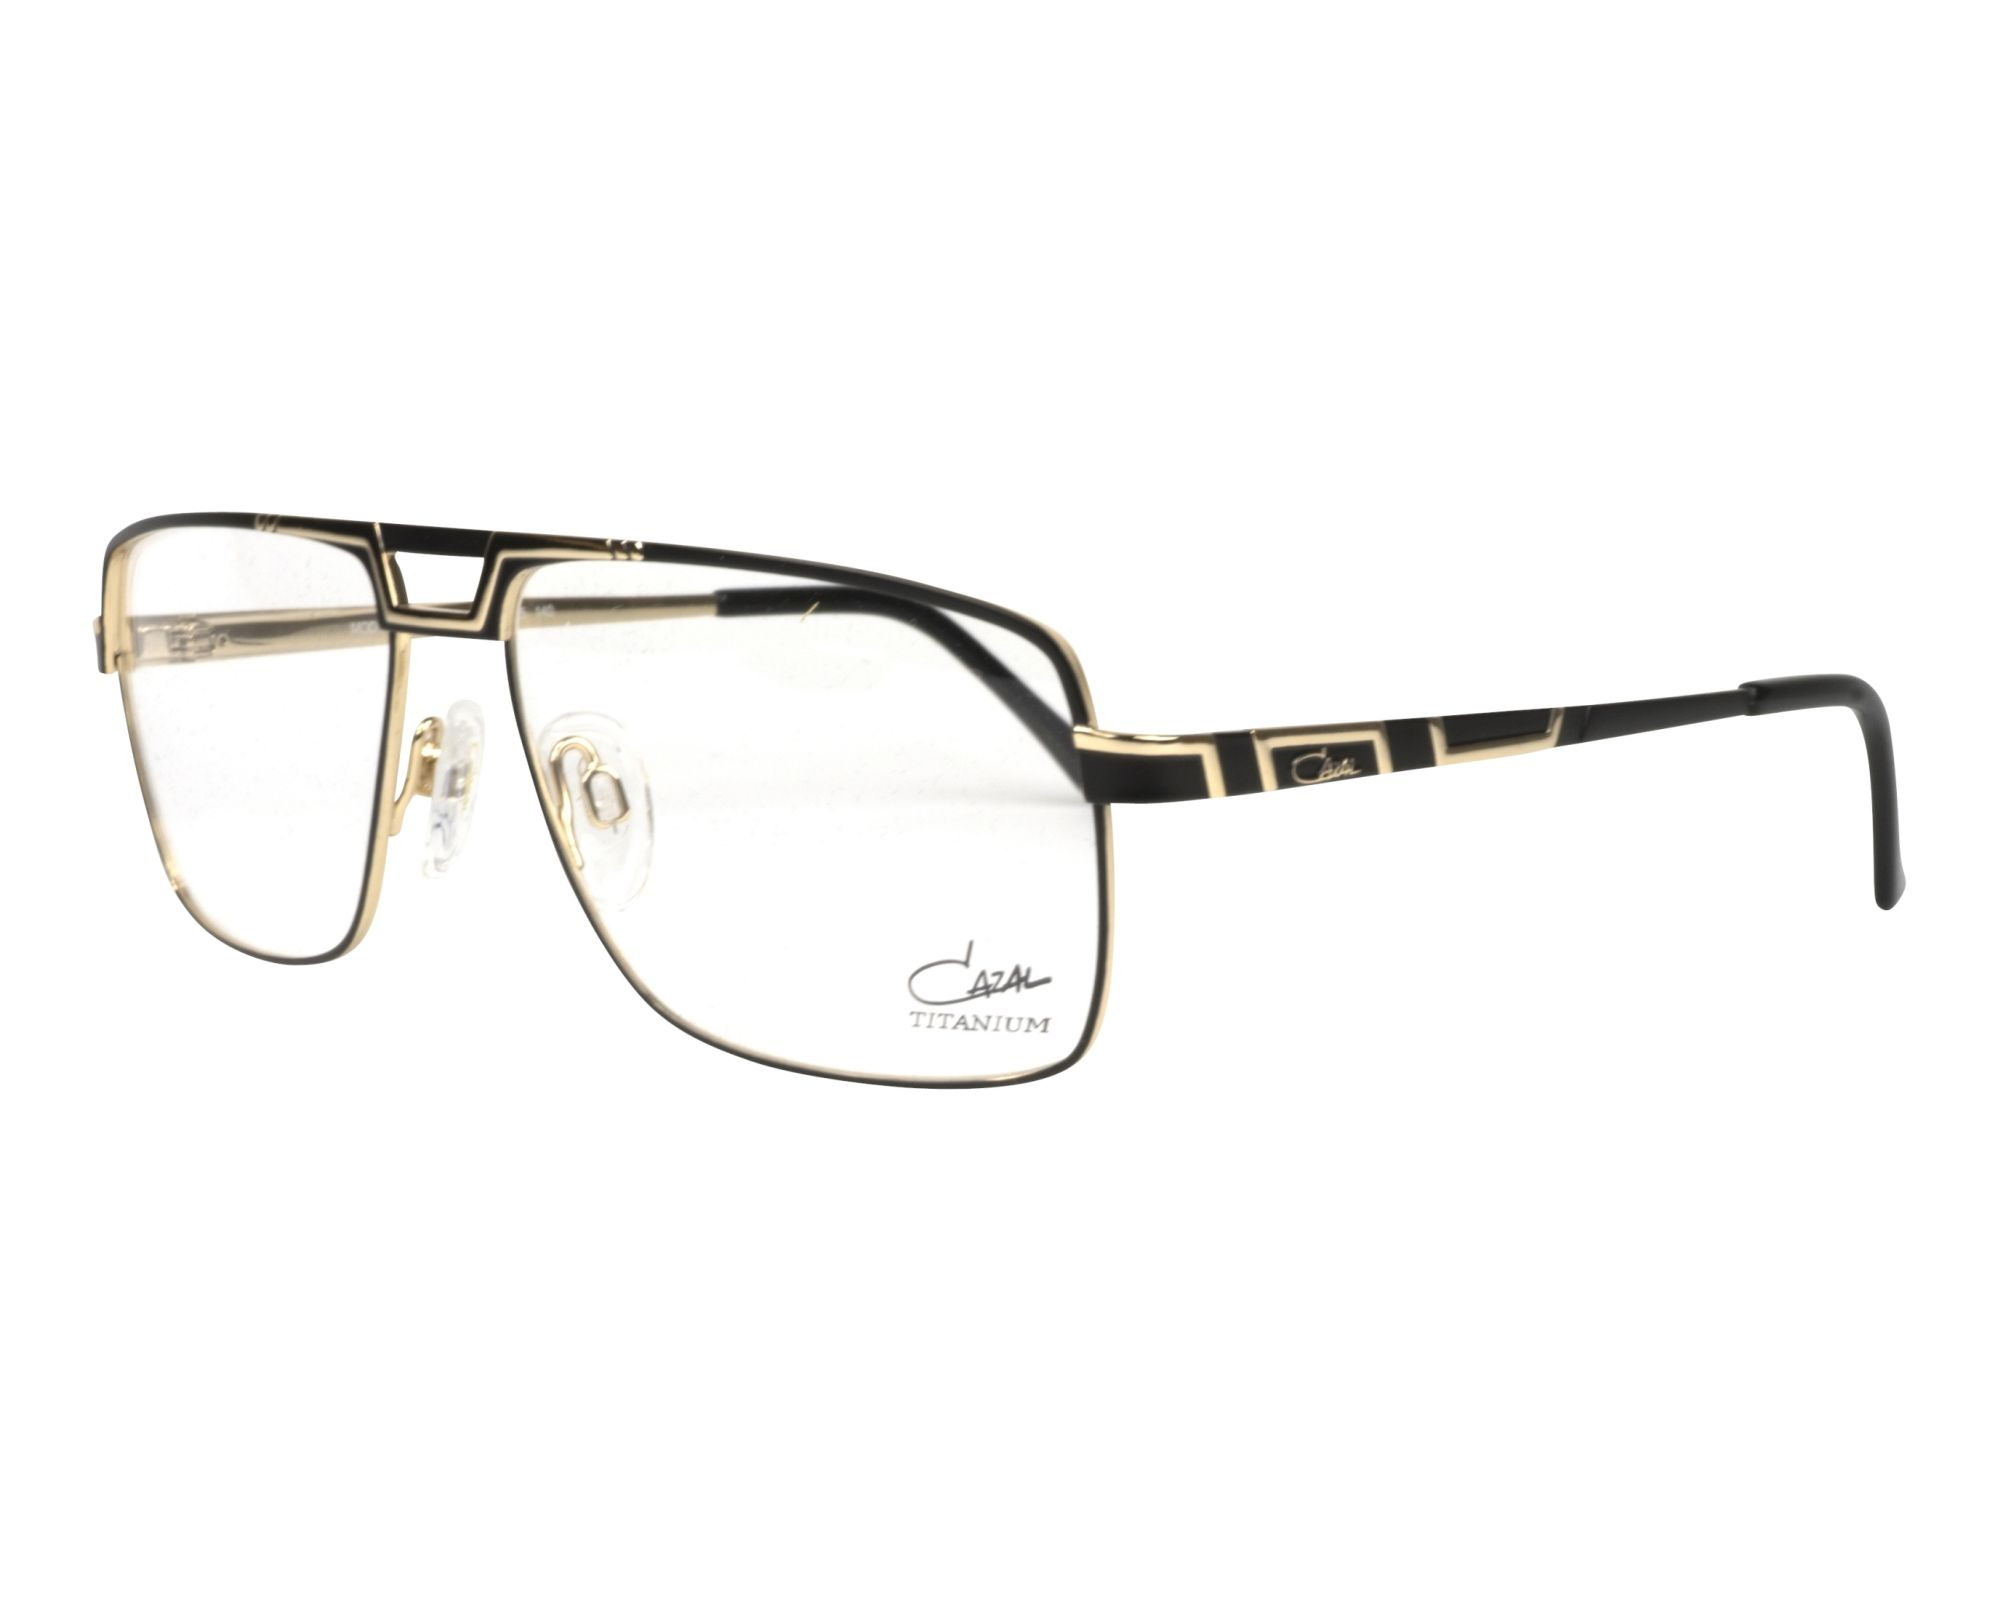 eyeglasses Cazal M-7068 001 57-15 Black Gold profile view